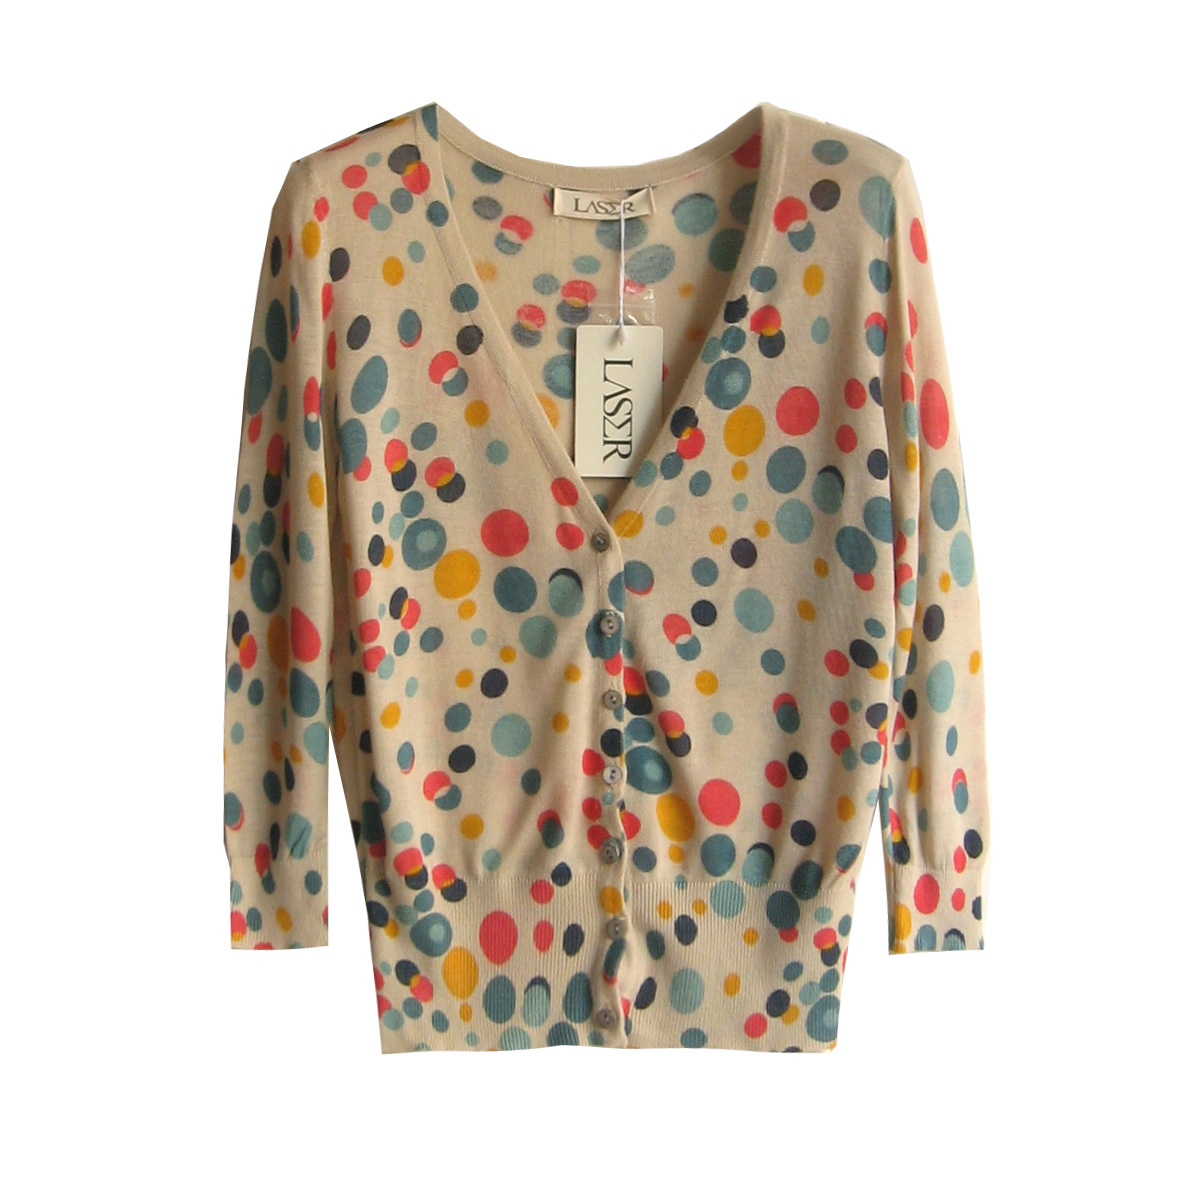 Cheap Polka Dot Cardigan Women, find Polka Dot Cardigan Women ...